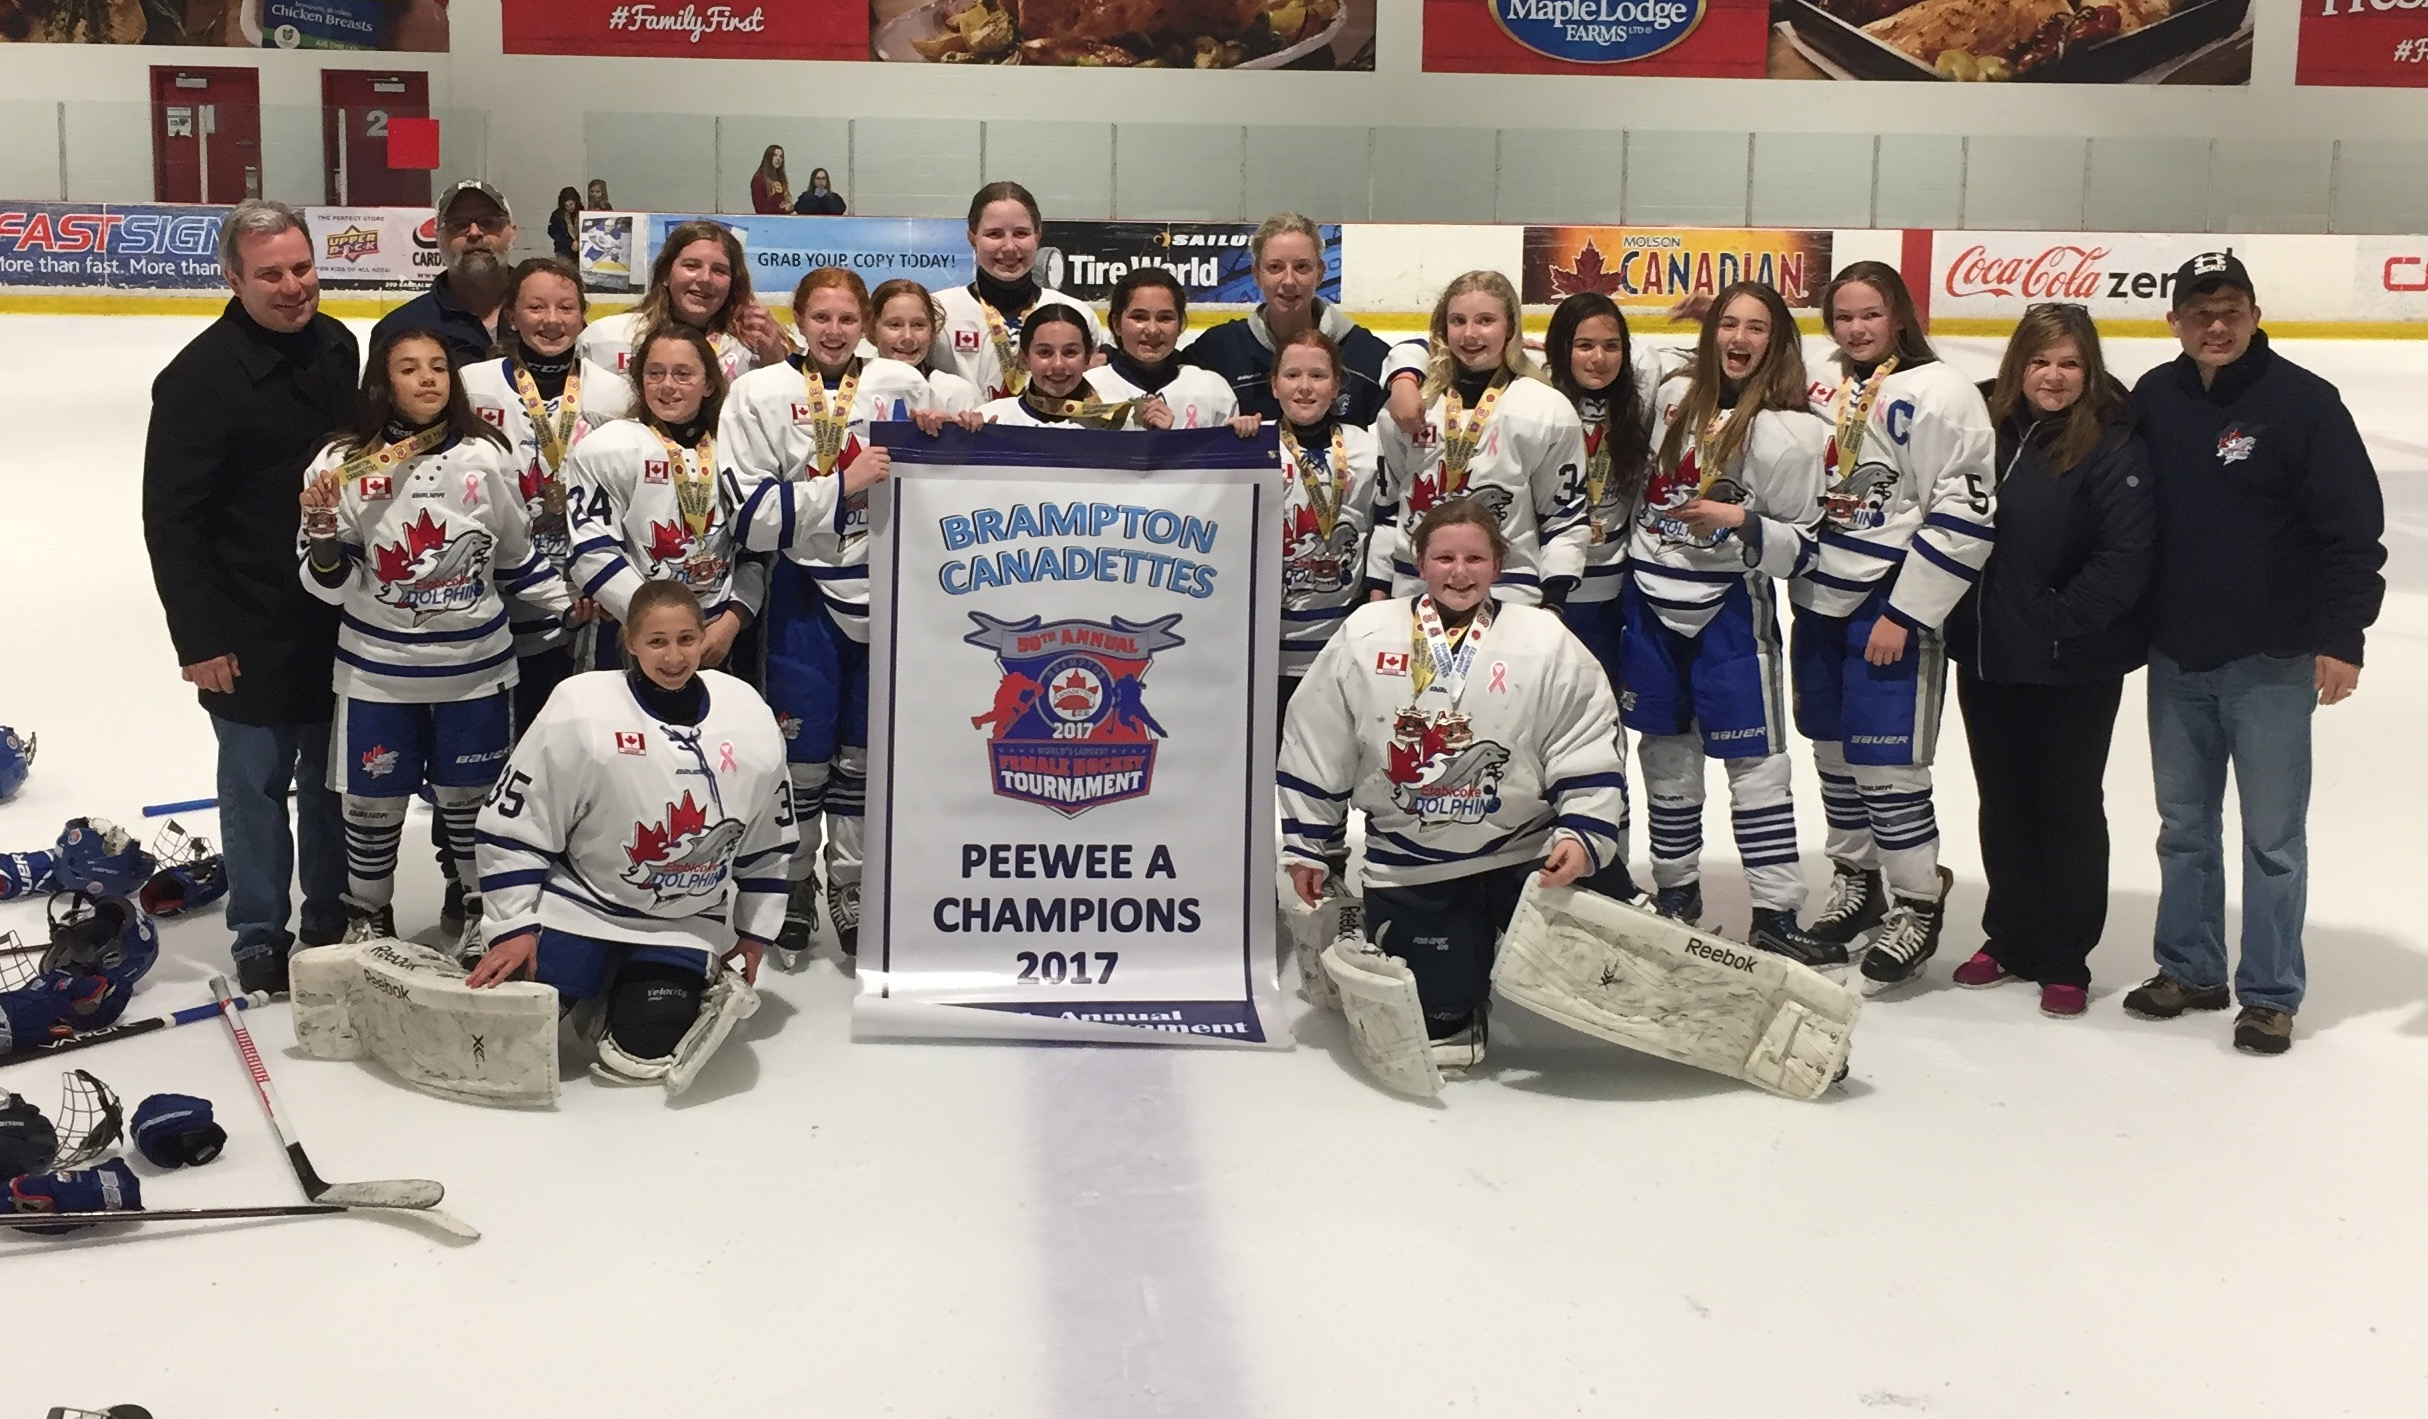 PeeWee A Win Gold at the 2017 Brampton Tournament